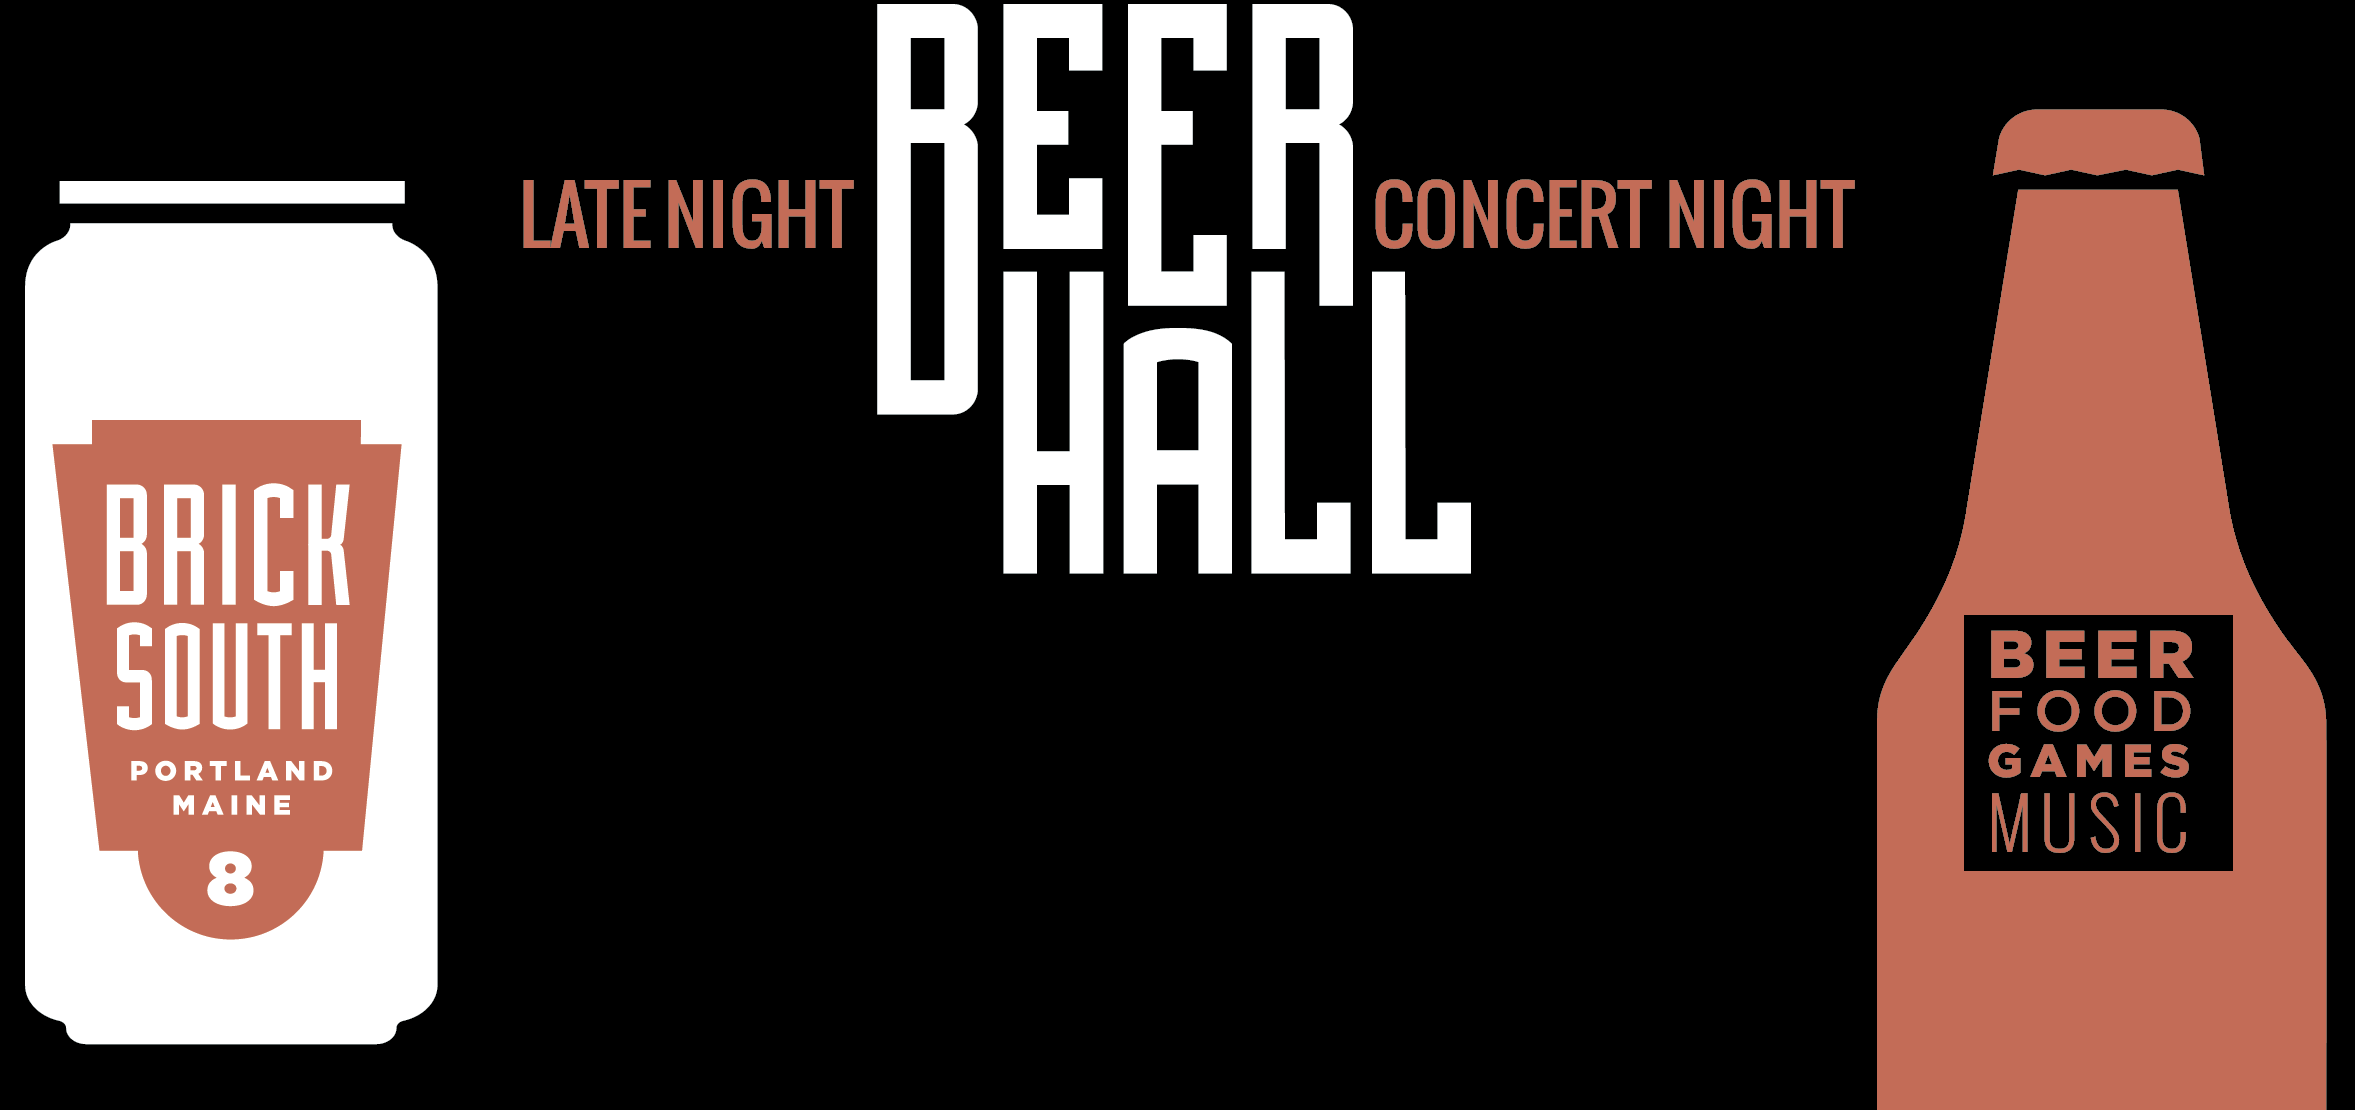 Concert nights* from 4–7 and 10pm–midnight. - *except Saturday, August 5